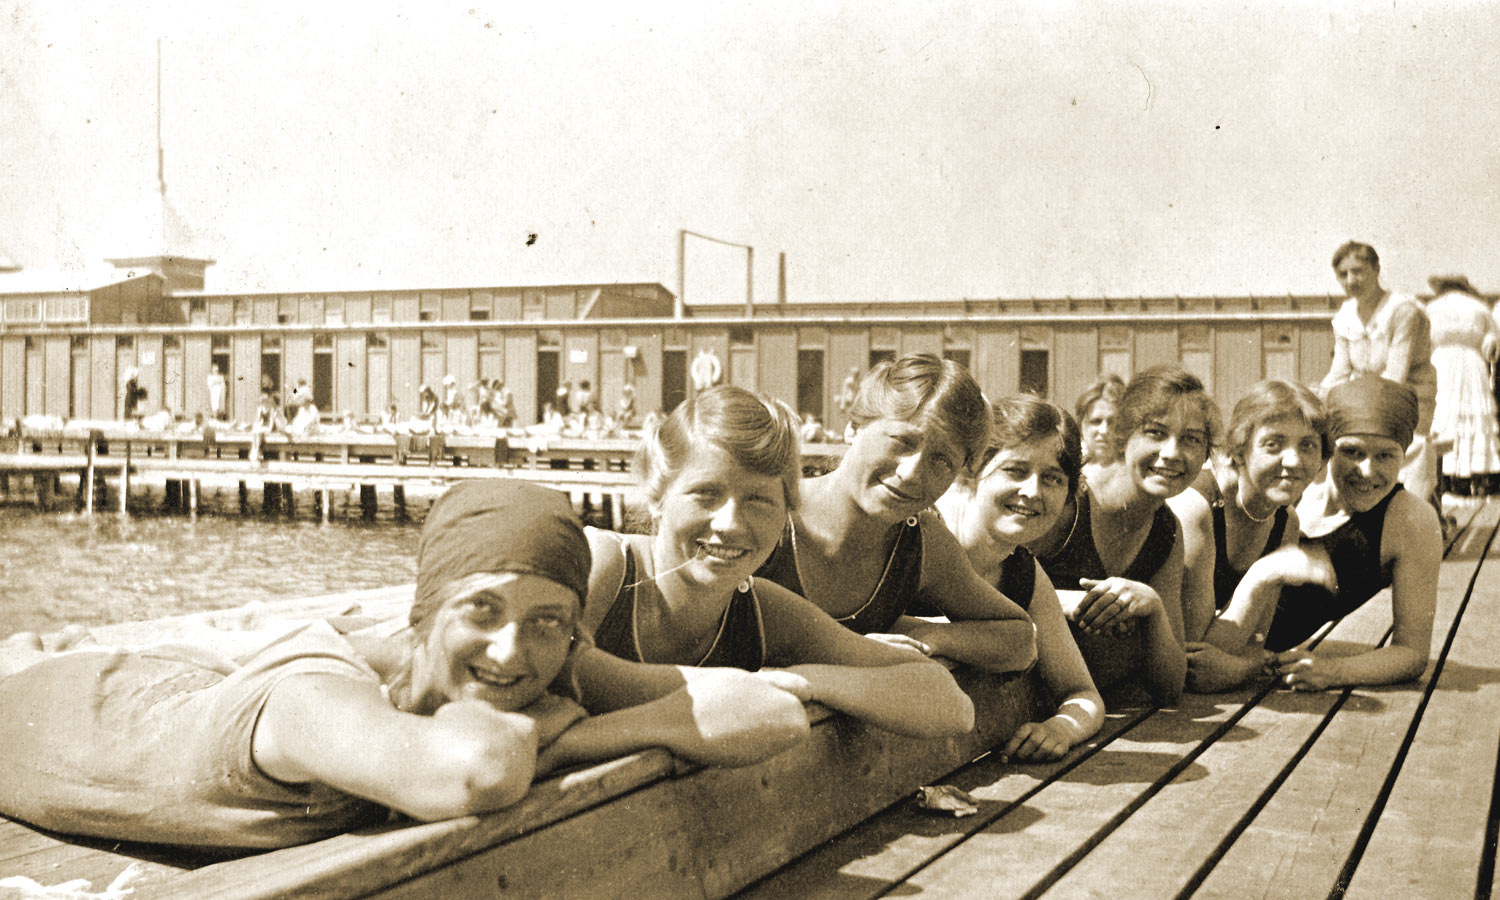 Helgoland Swim Baths - Denmark - Stefanie Fryland Clausen - Olympic Gold Winner - 1920